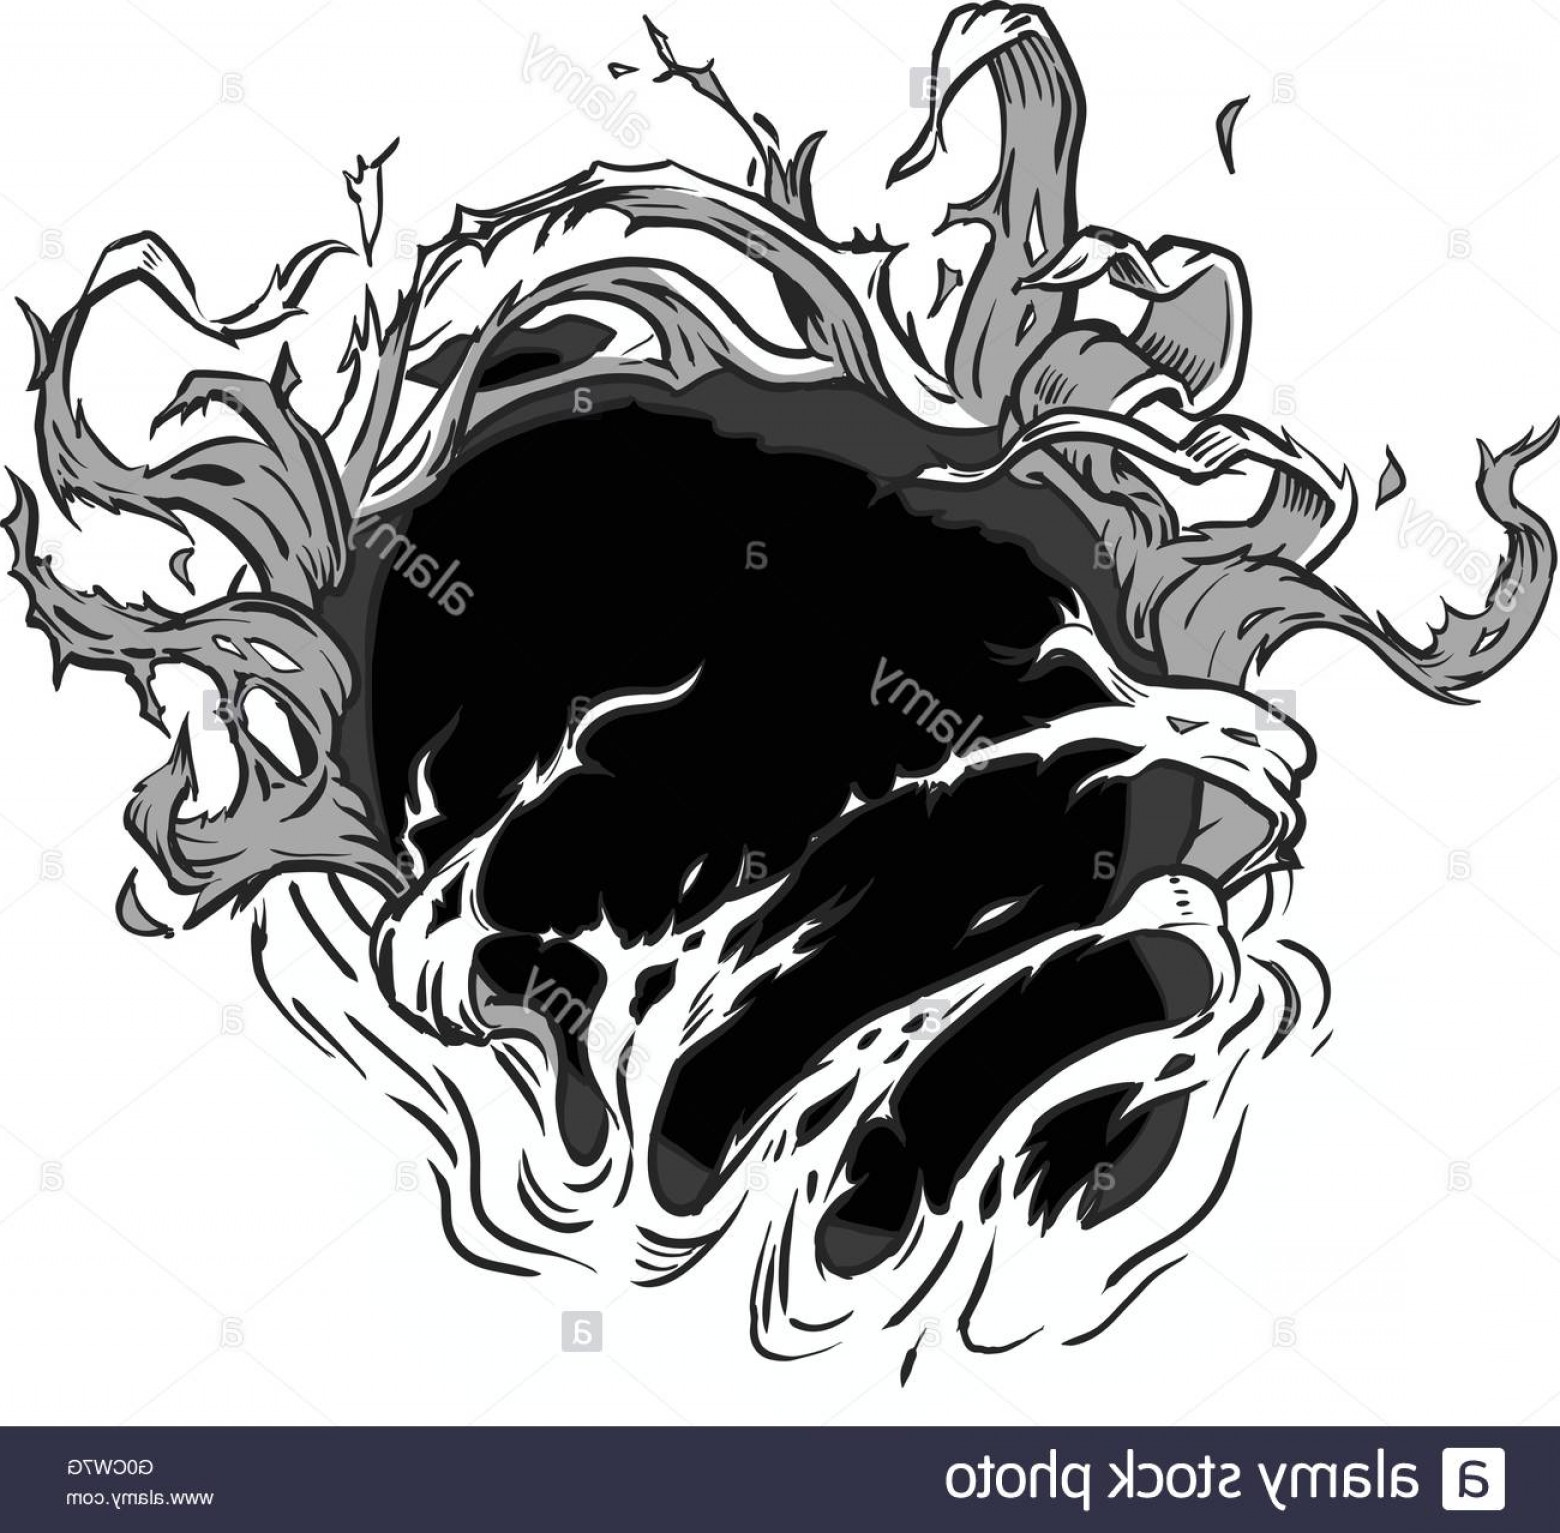 Rip Clip Art Vector: Stock Photo This Vector Clip Art Is Designed To Appear As Though Something Behind